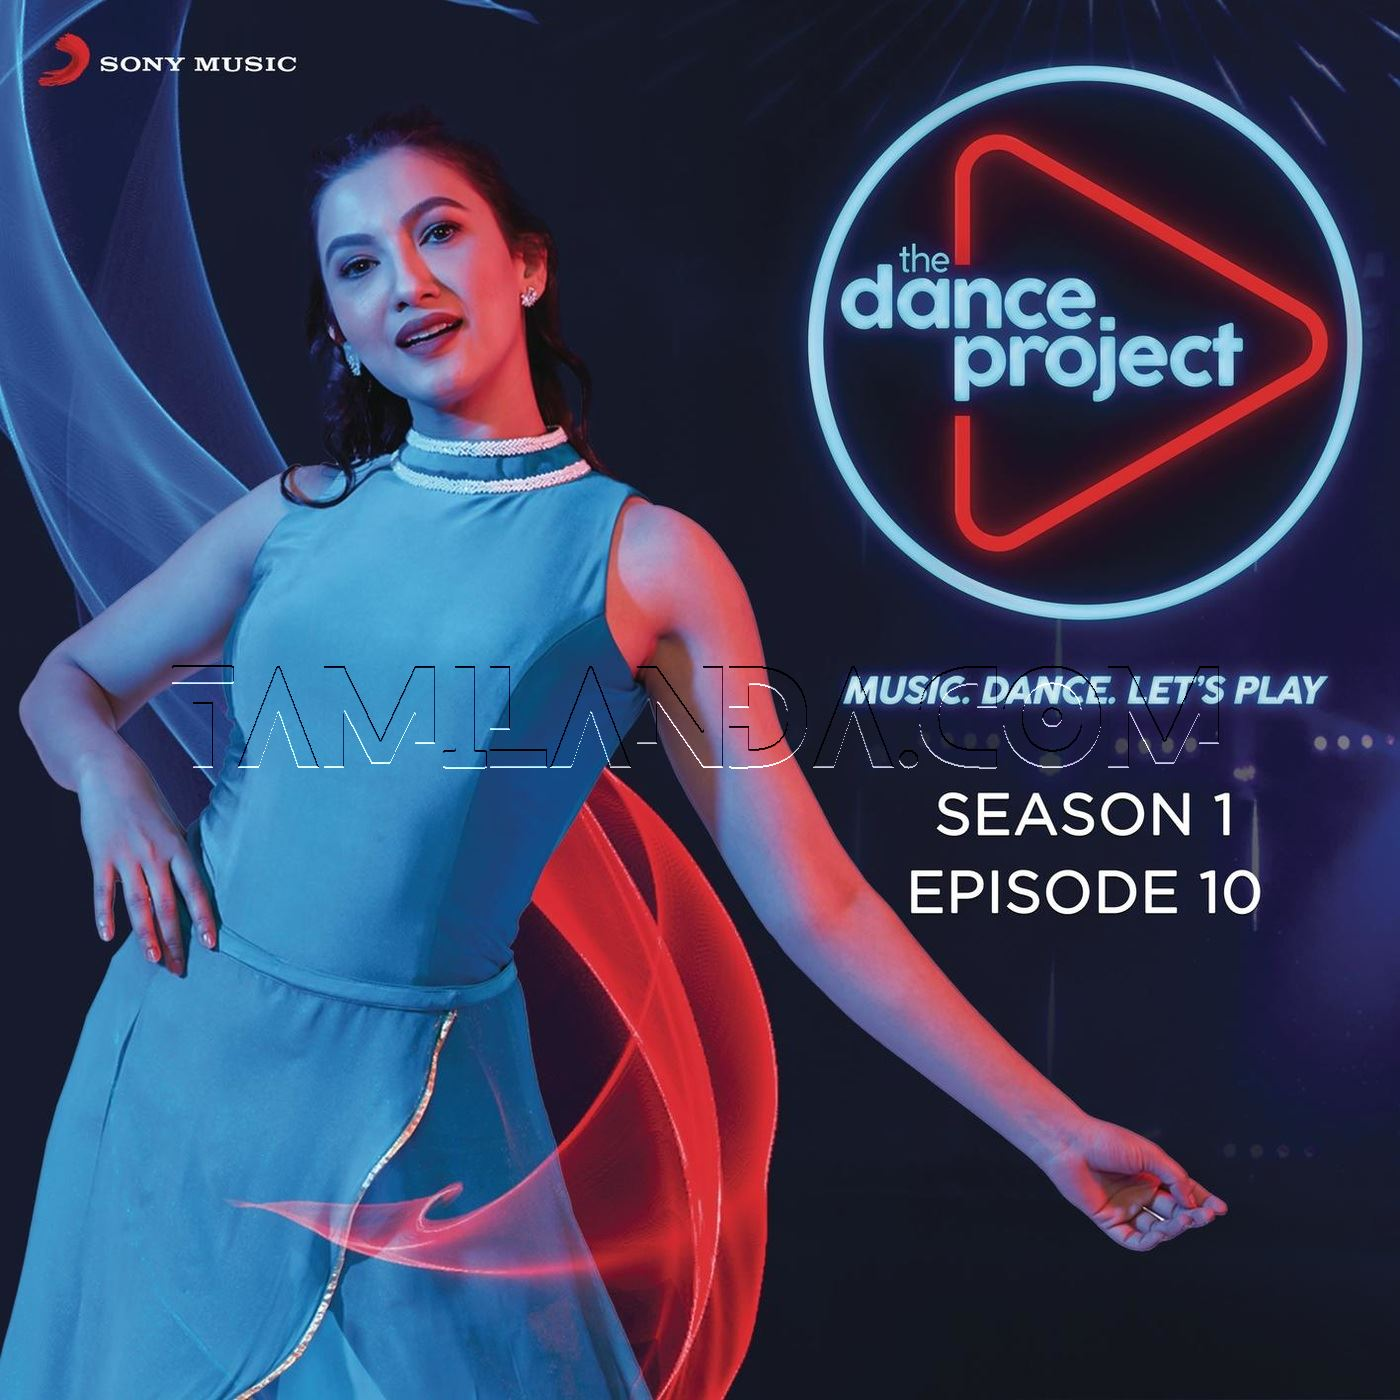 The Dance Project (Season 1 Episode 10) FLAC Songs (2019)